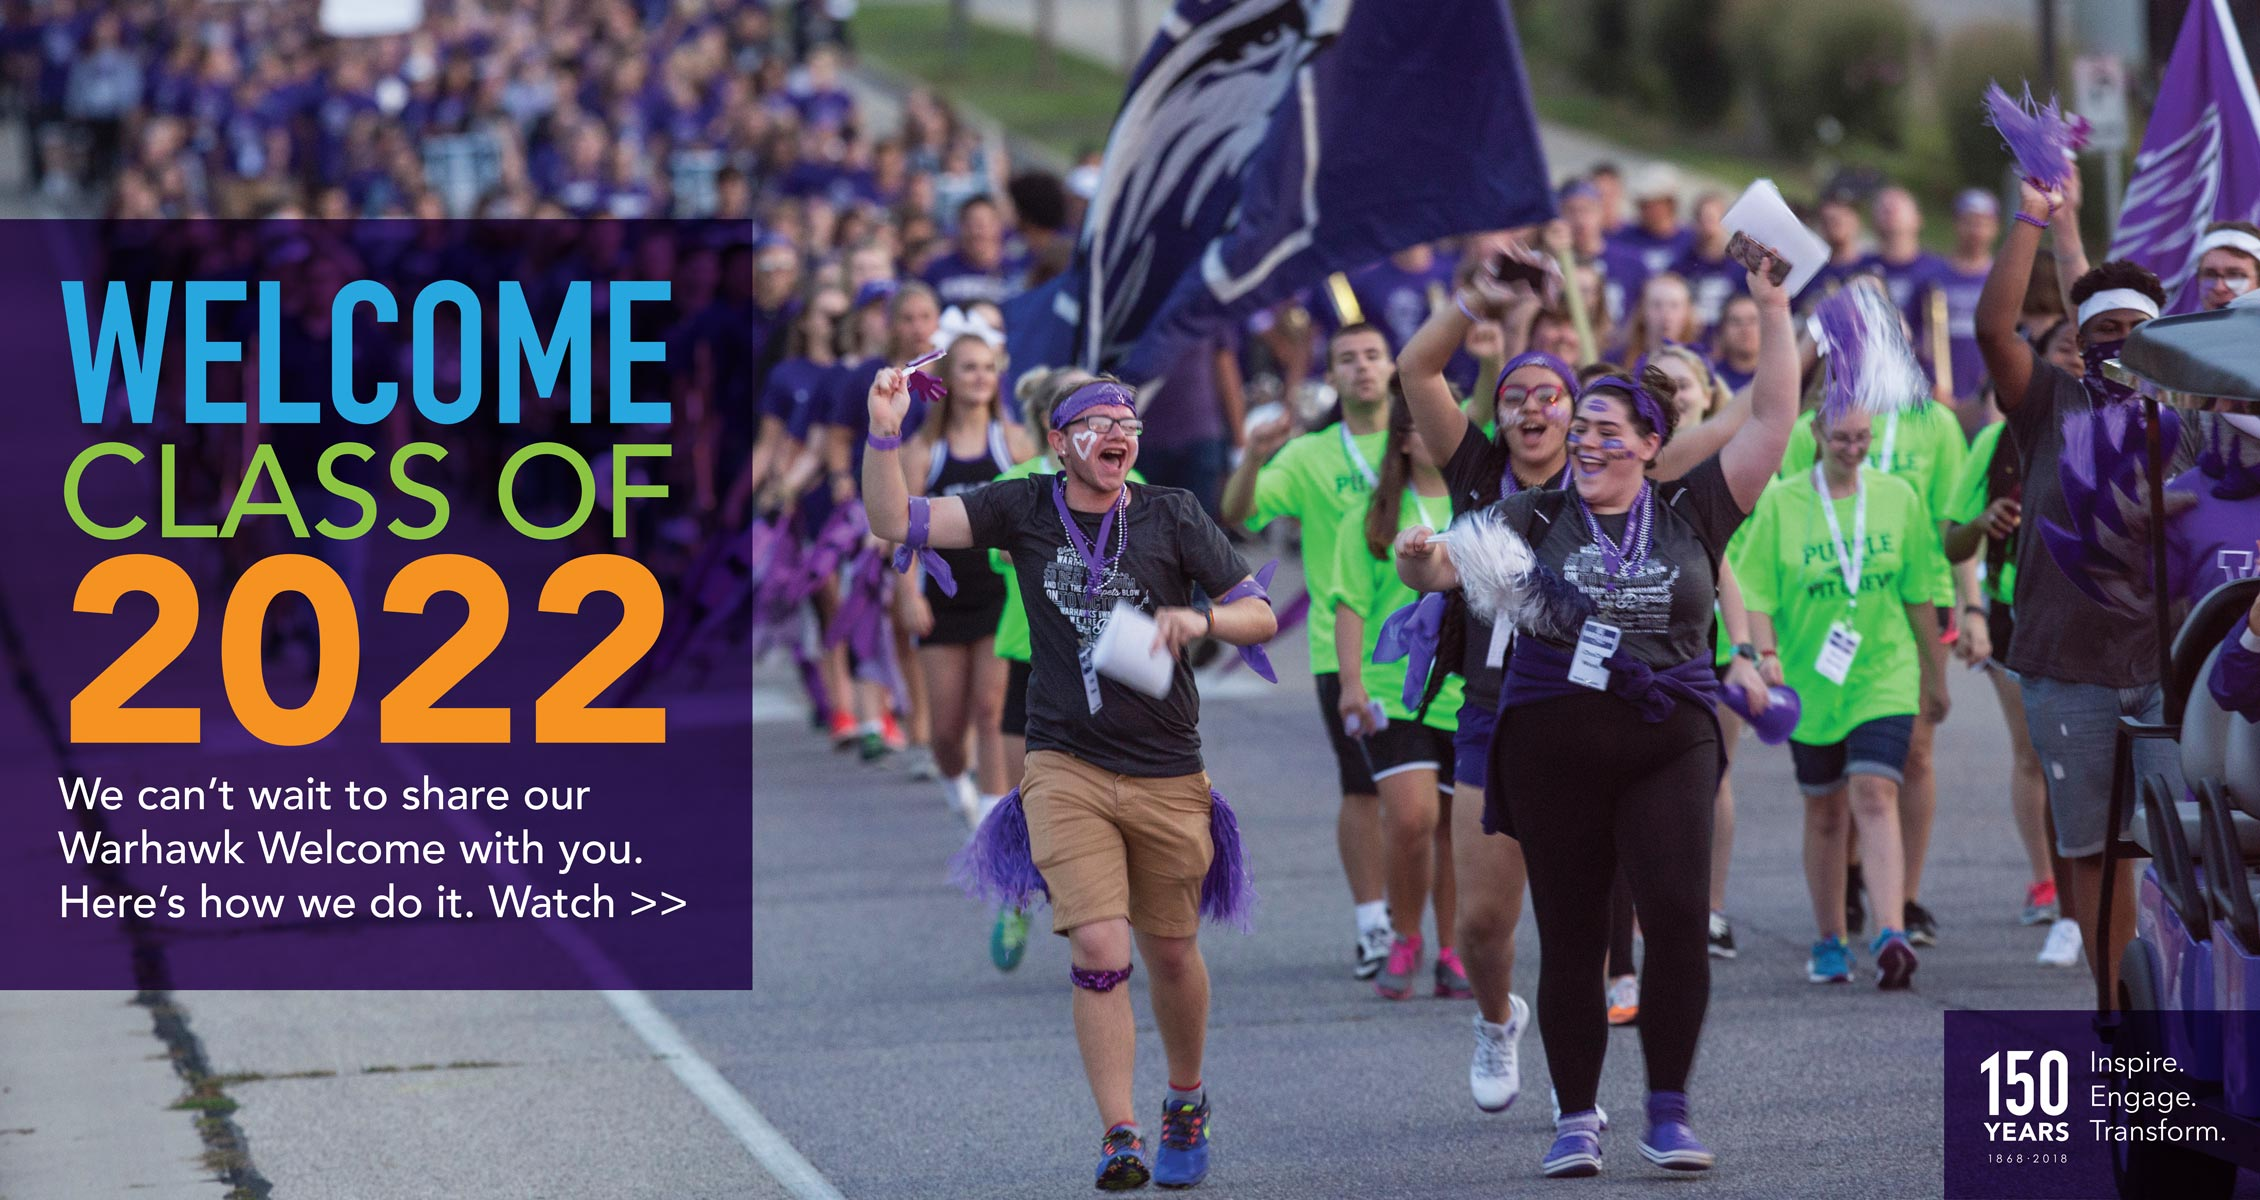 We can't wait to share our Warhawk Welcome with you. Here's how we do it. View >>